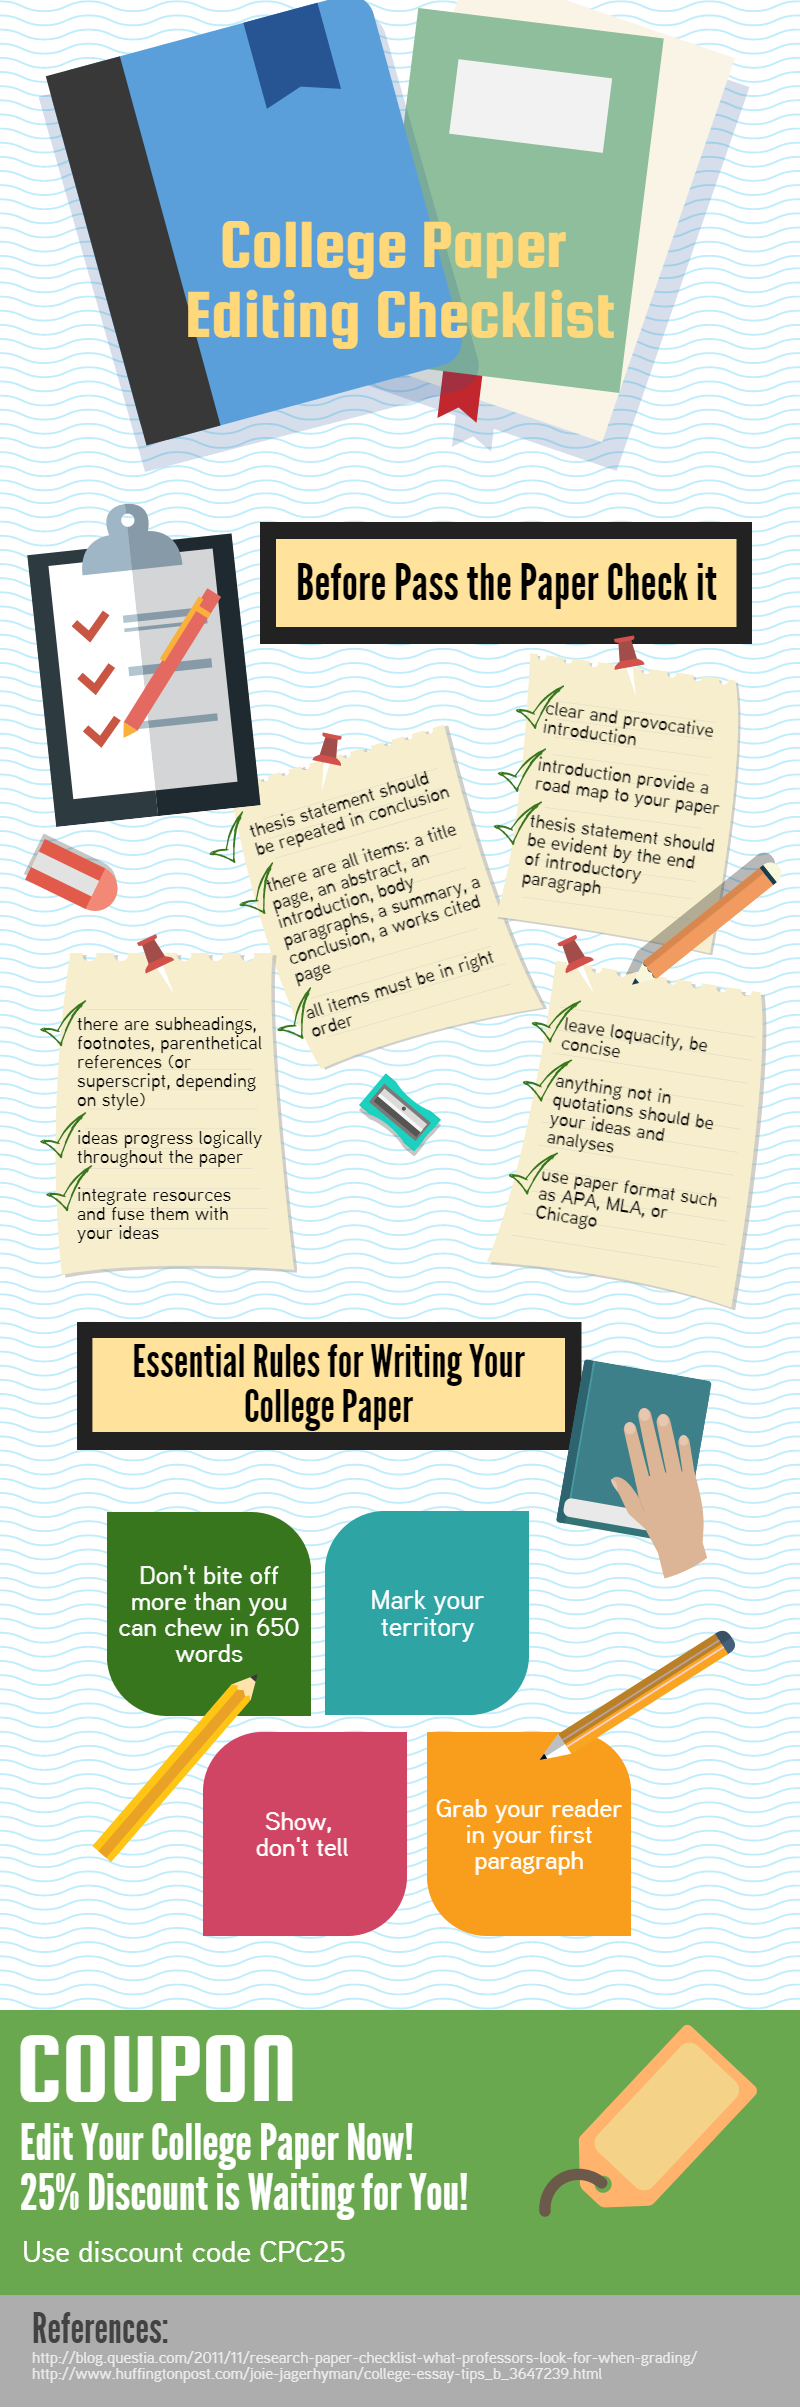 College Paper Editing Checklist #Infographic